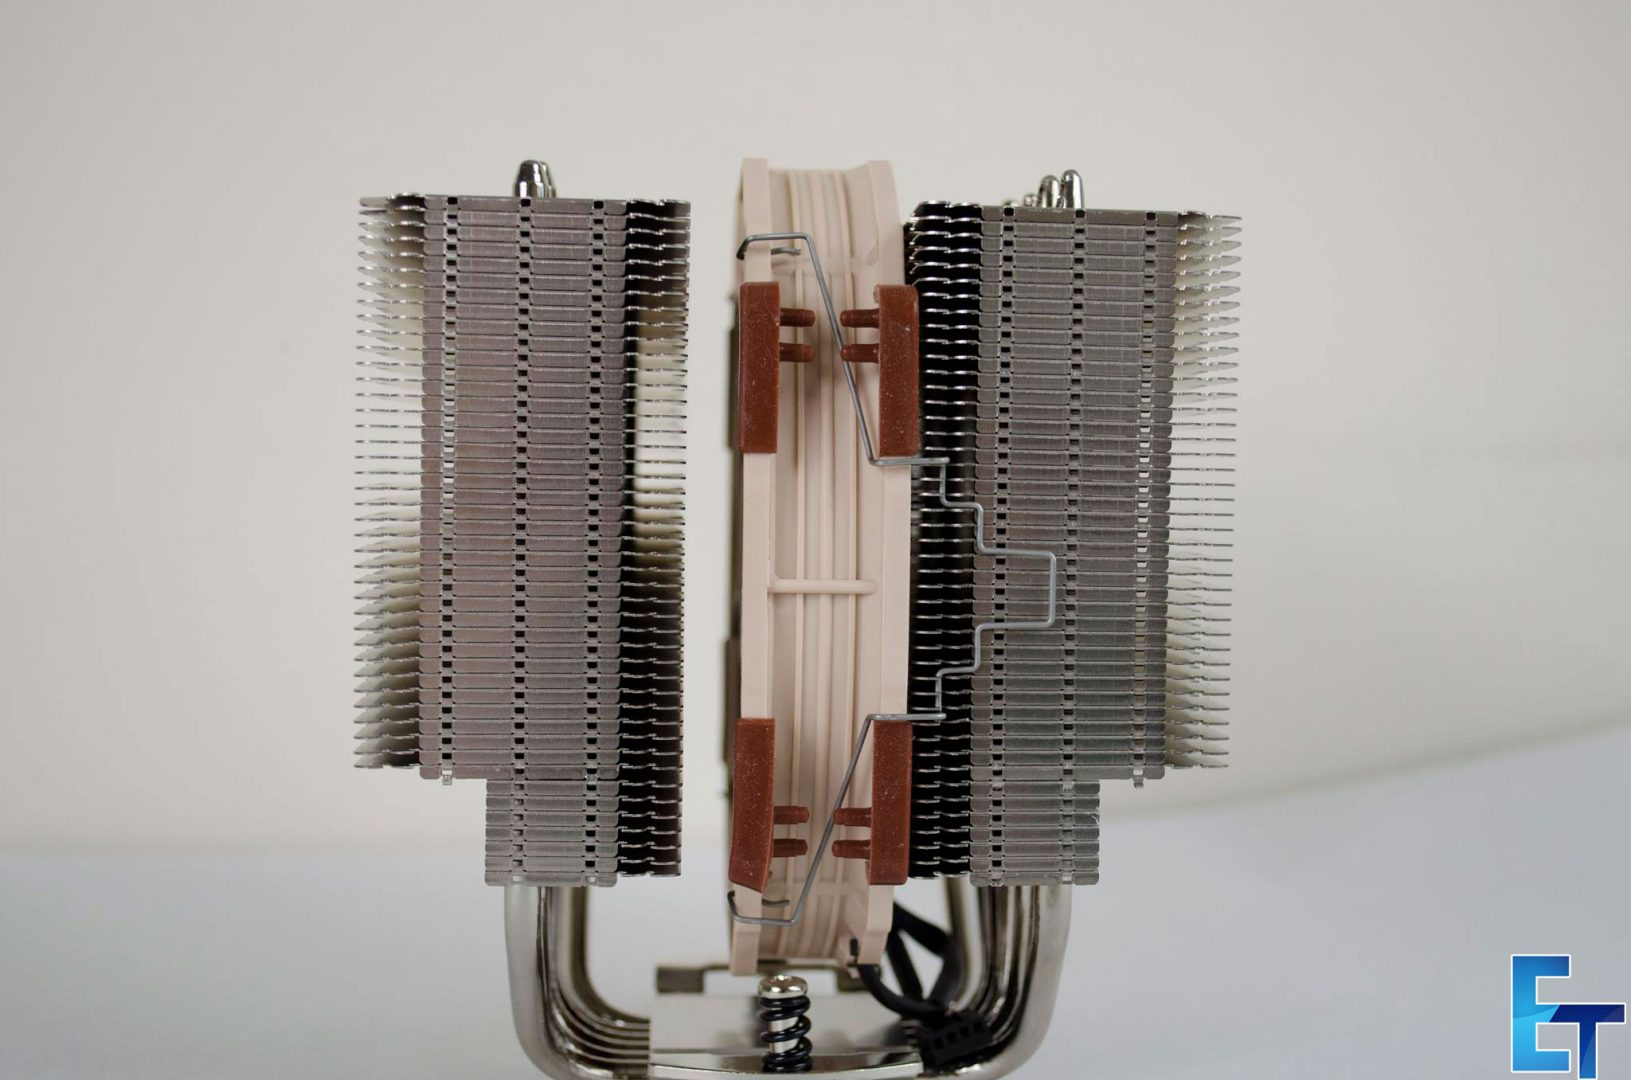 Noctua-NHD15S-CPU-Cooler-Review_8